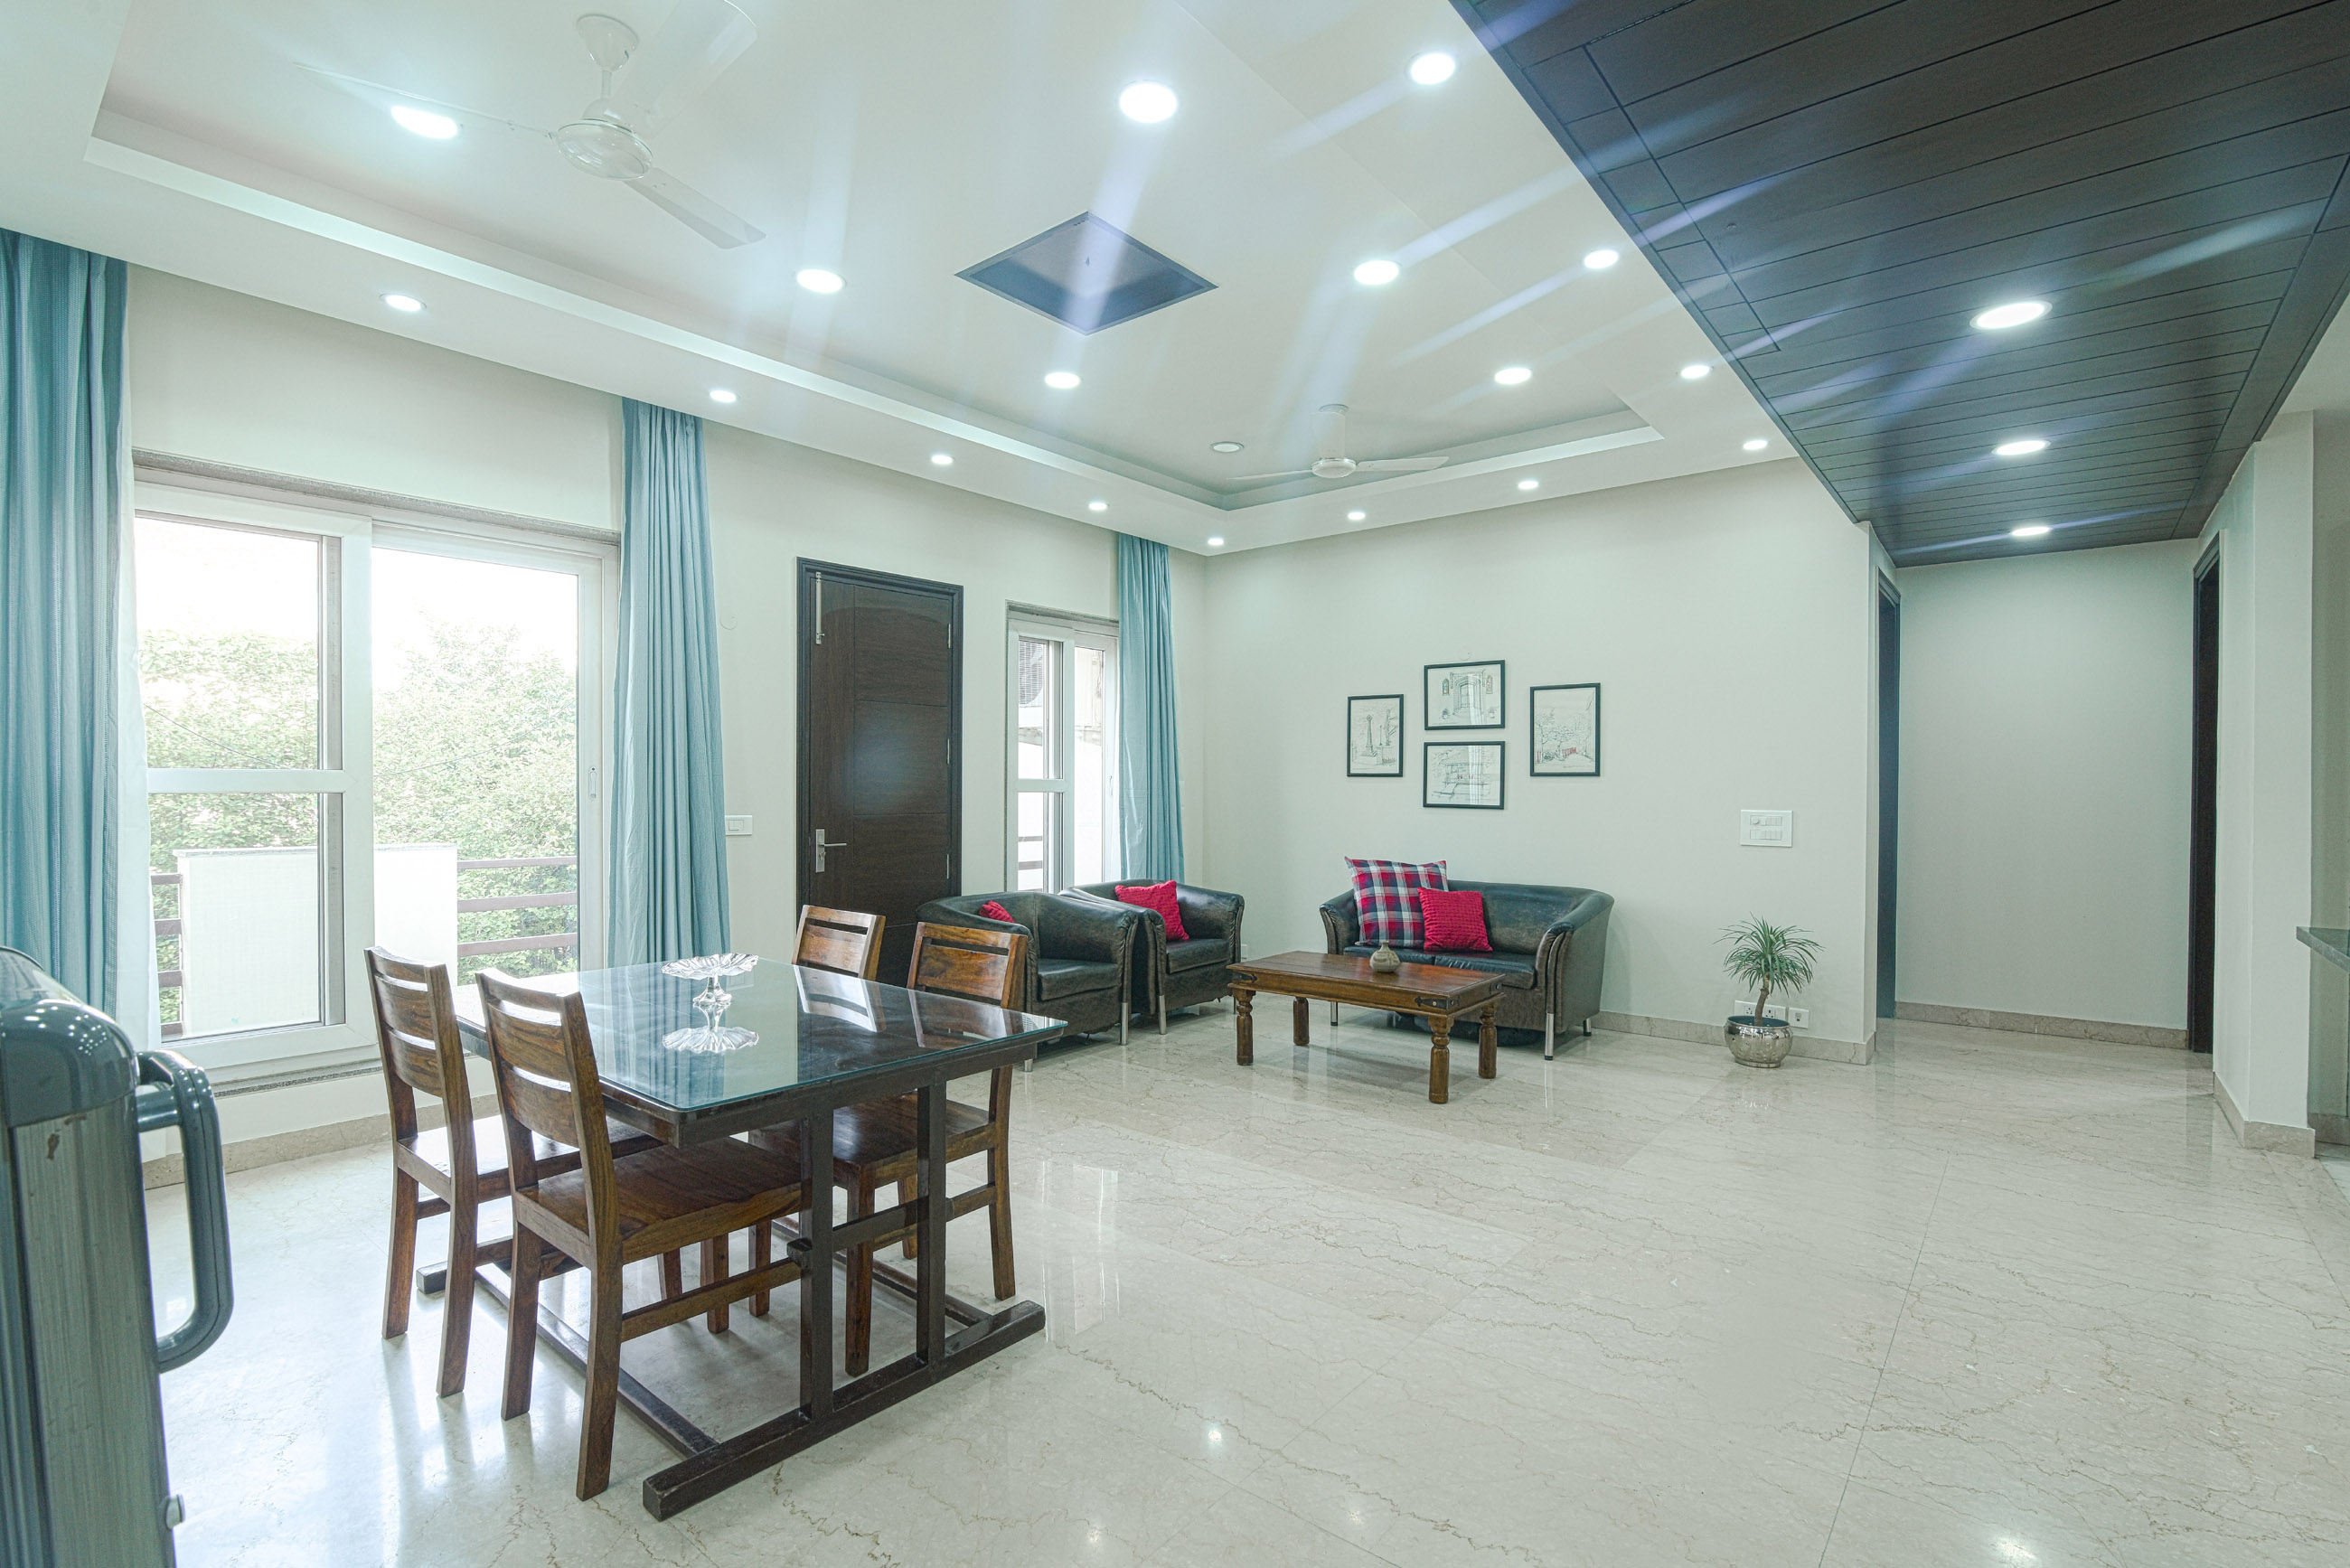 Perch Grove - Golf Course Road, 3 BHK, Dining Table